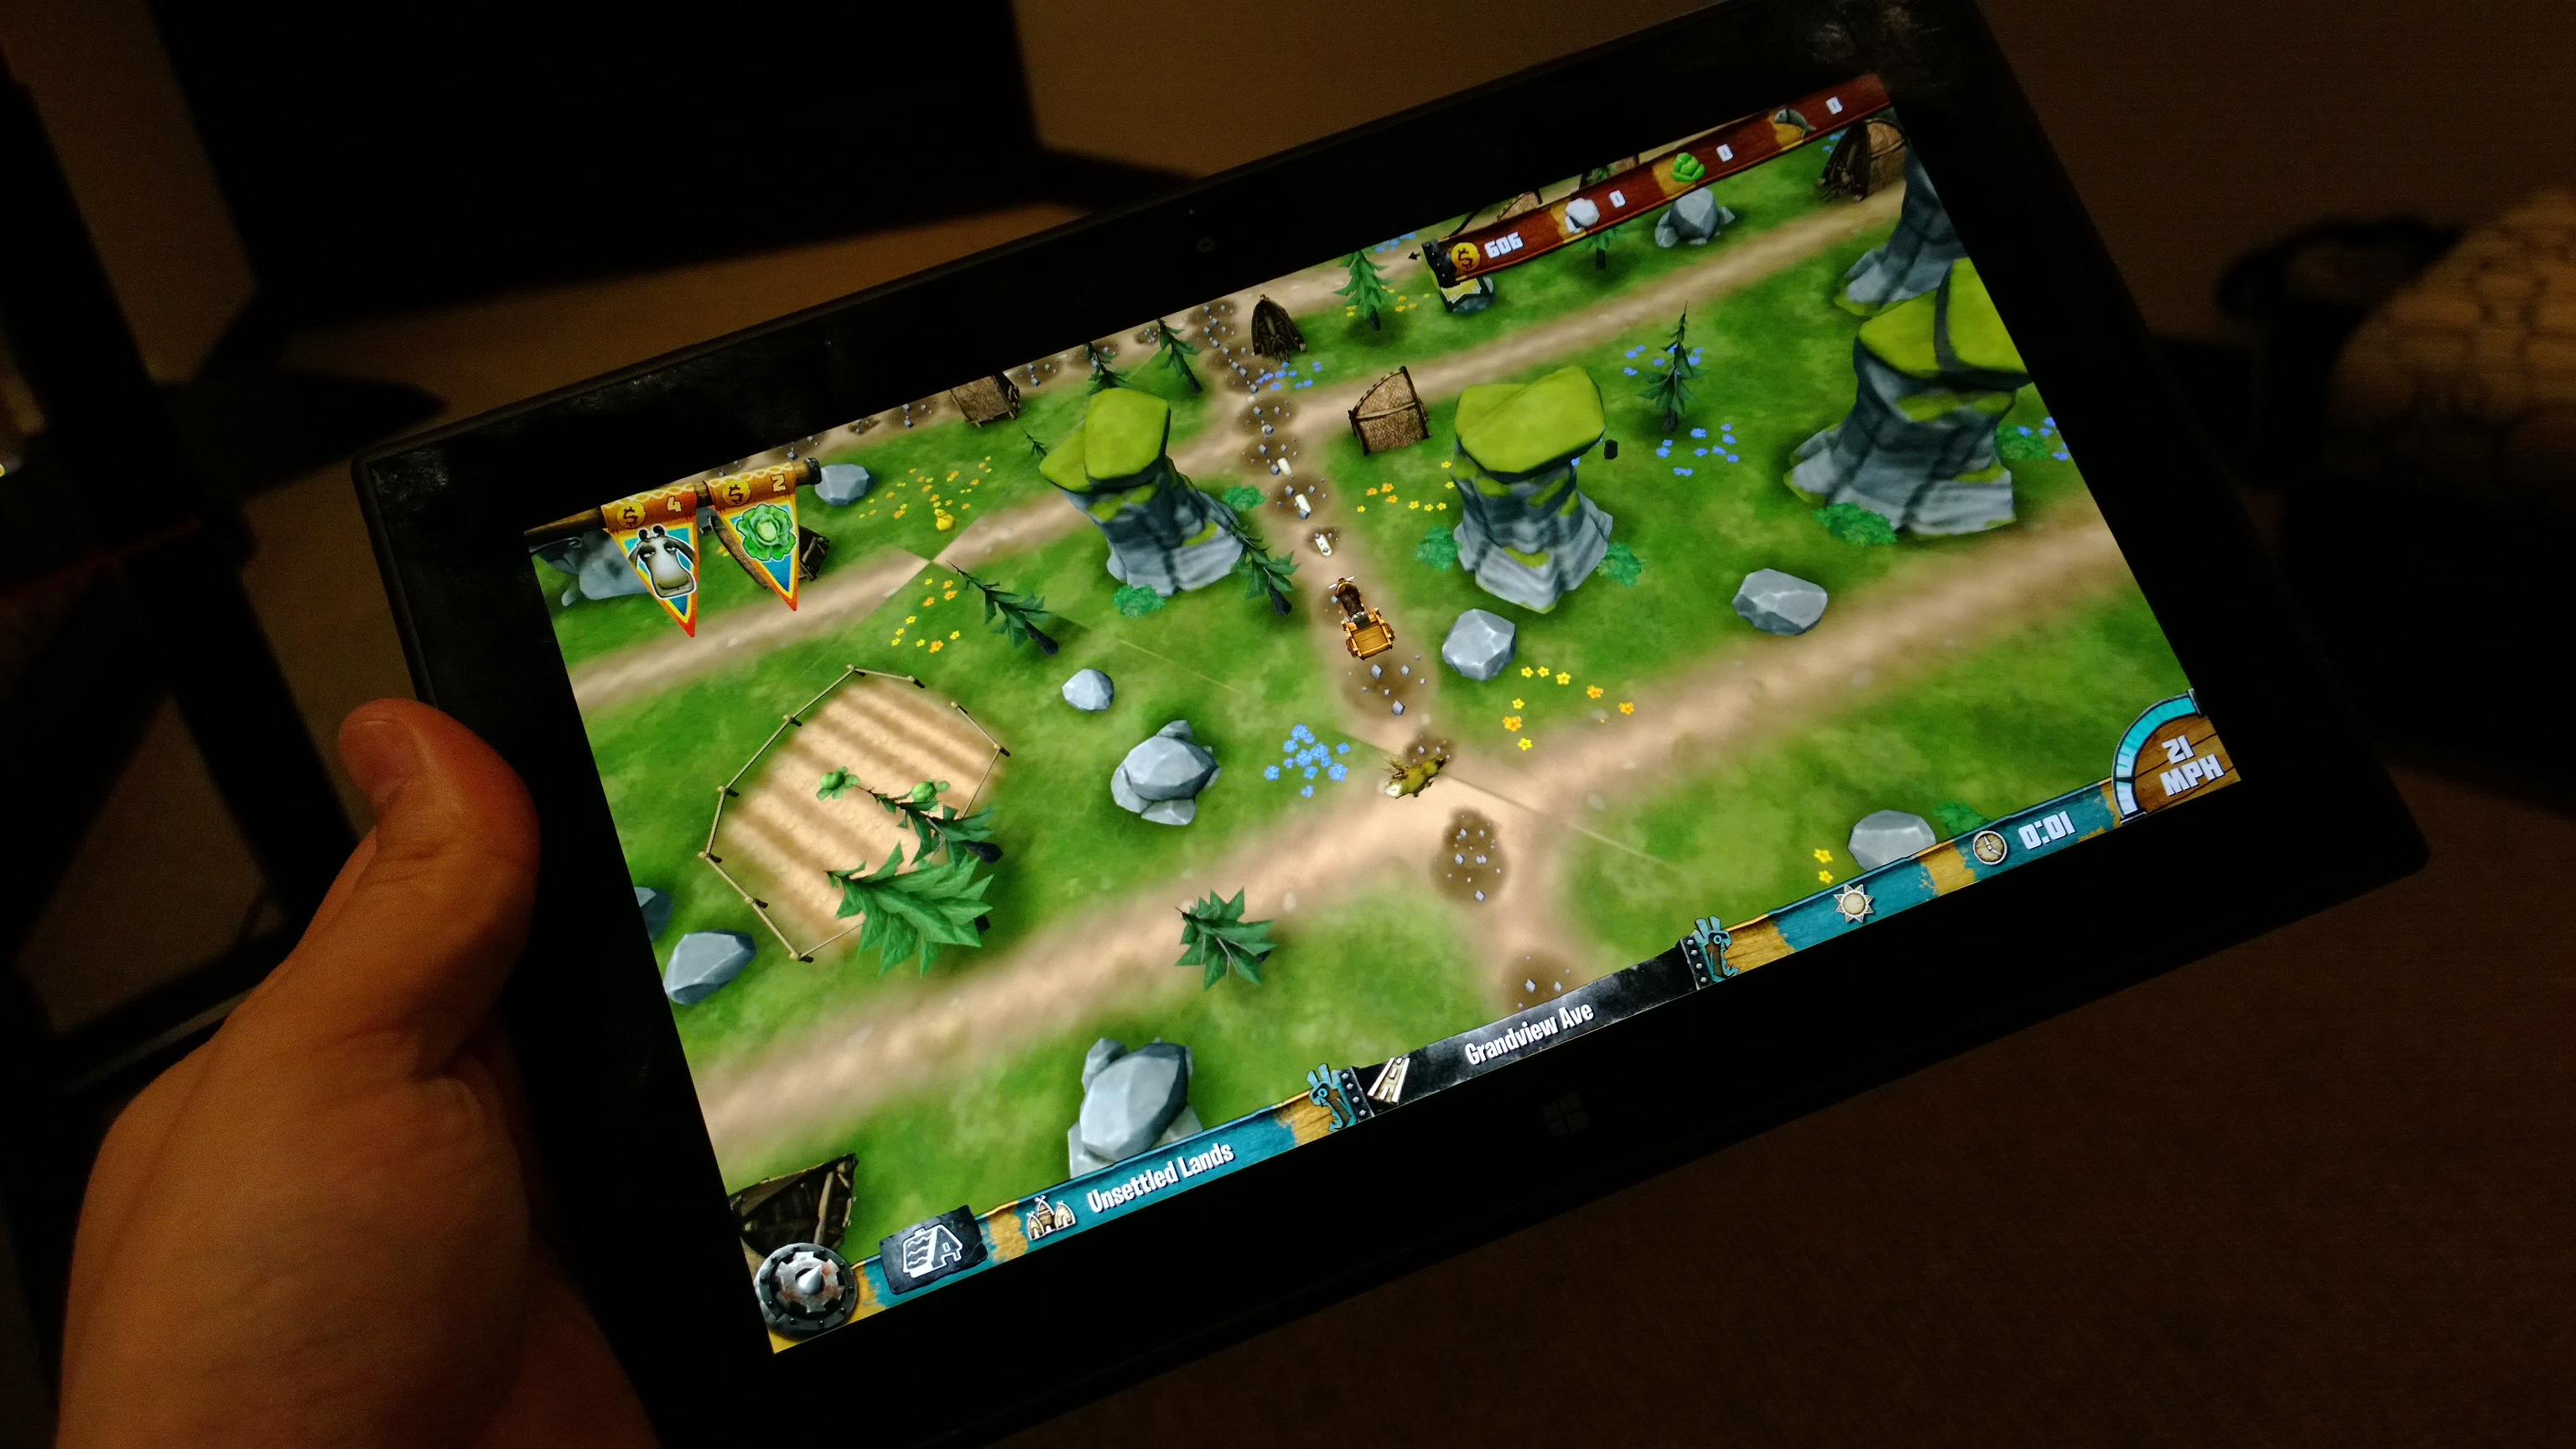 Hands On Dreamwork S Dragons Adventure For The Nokia